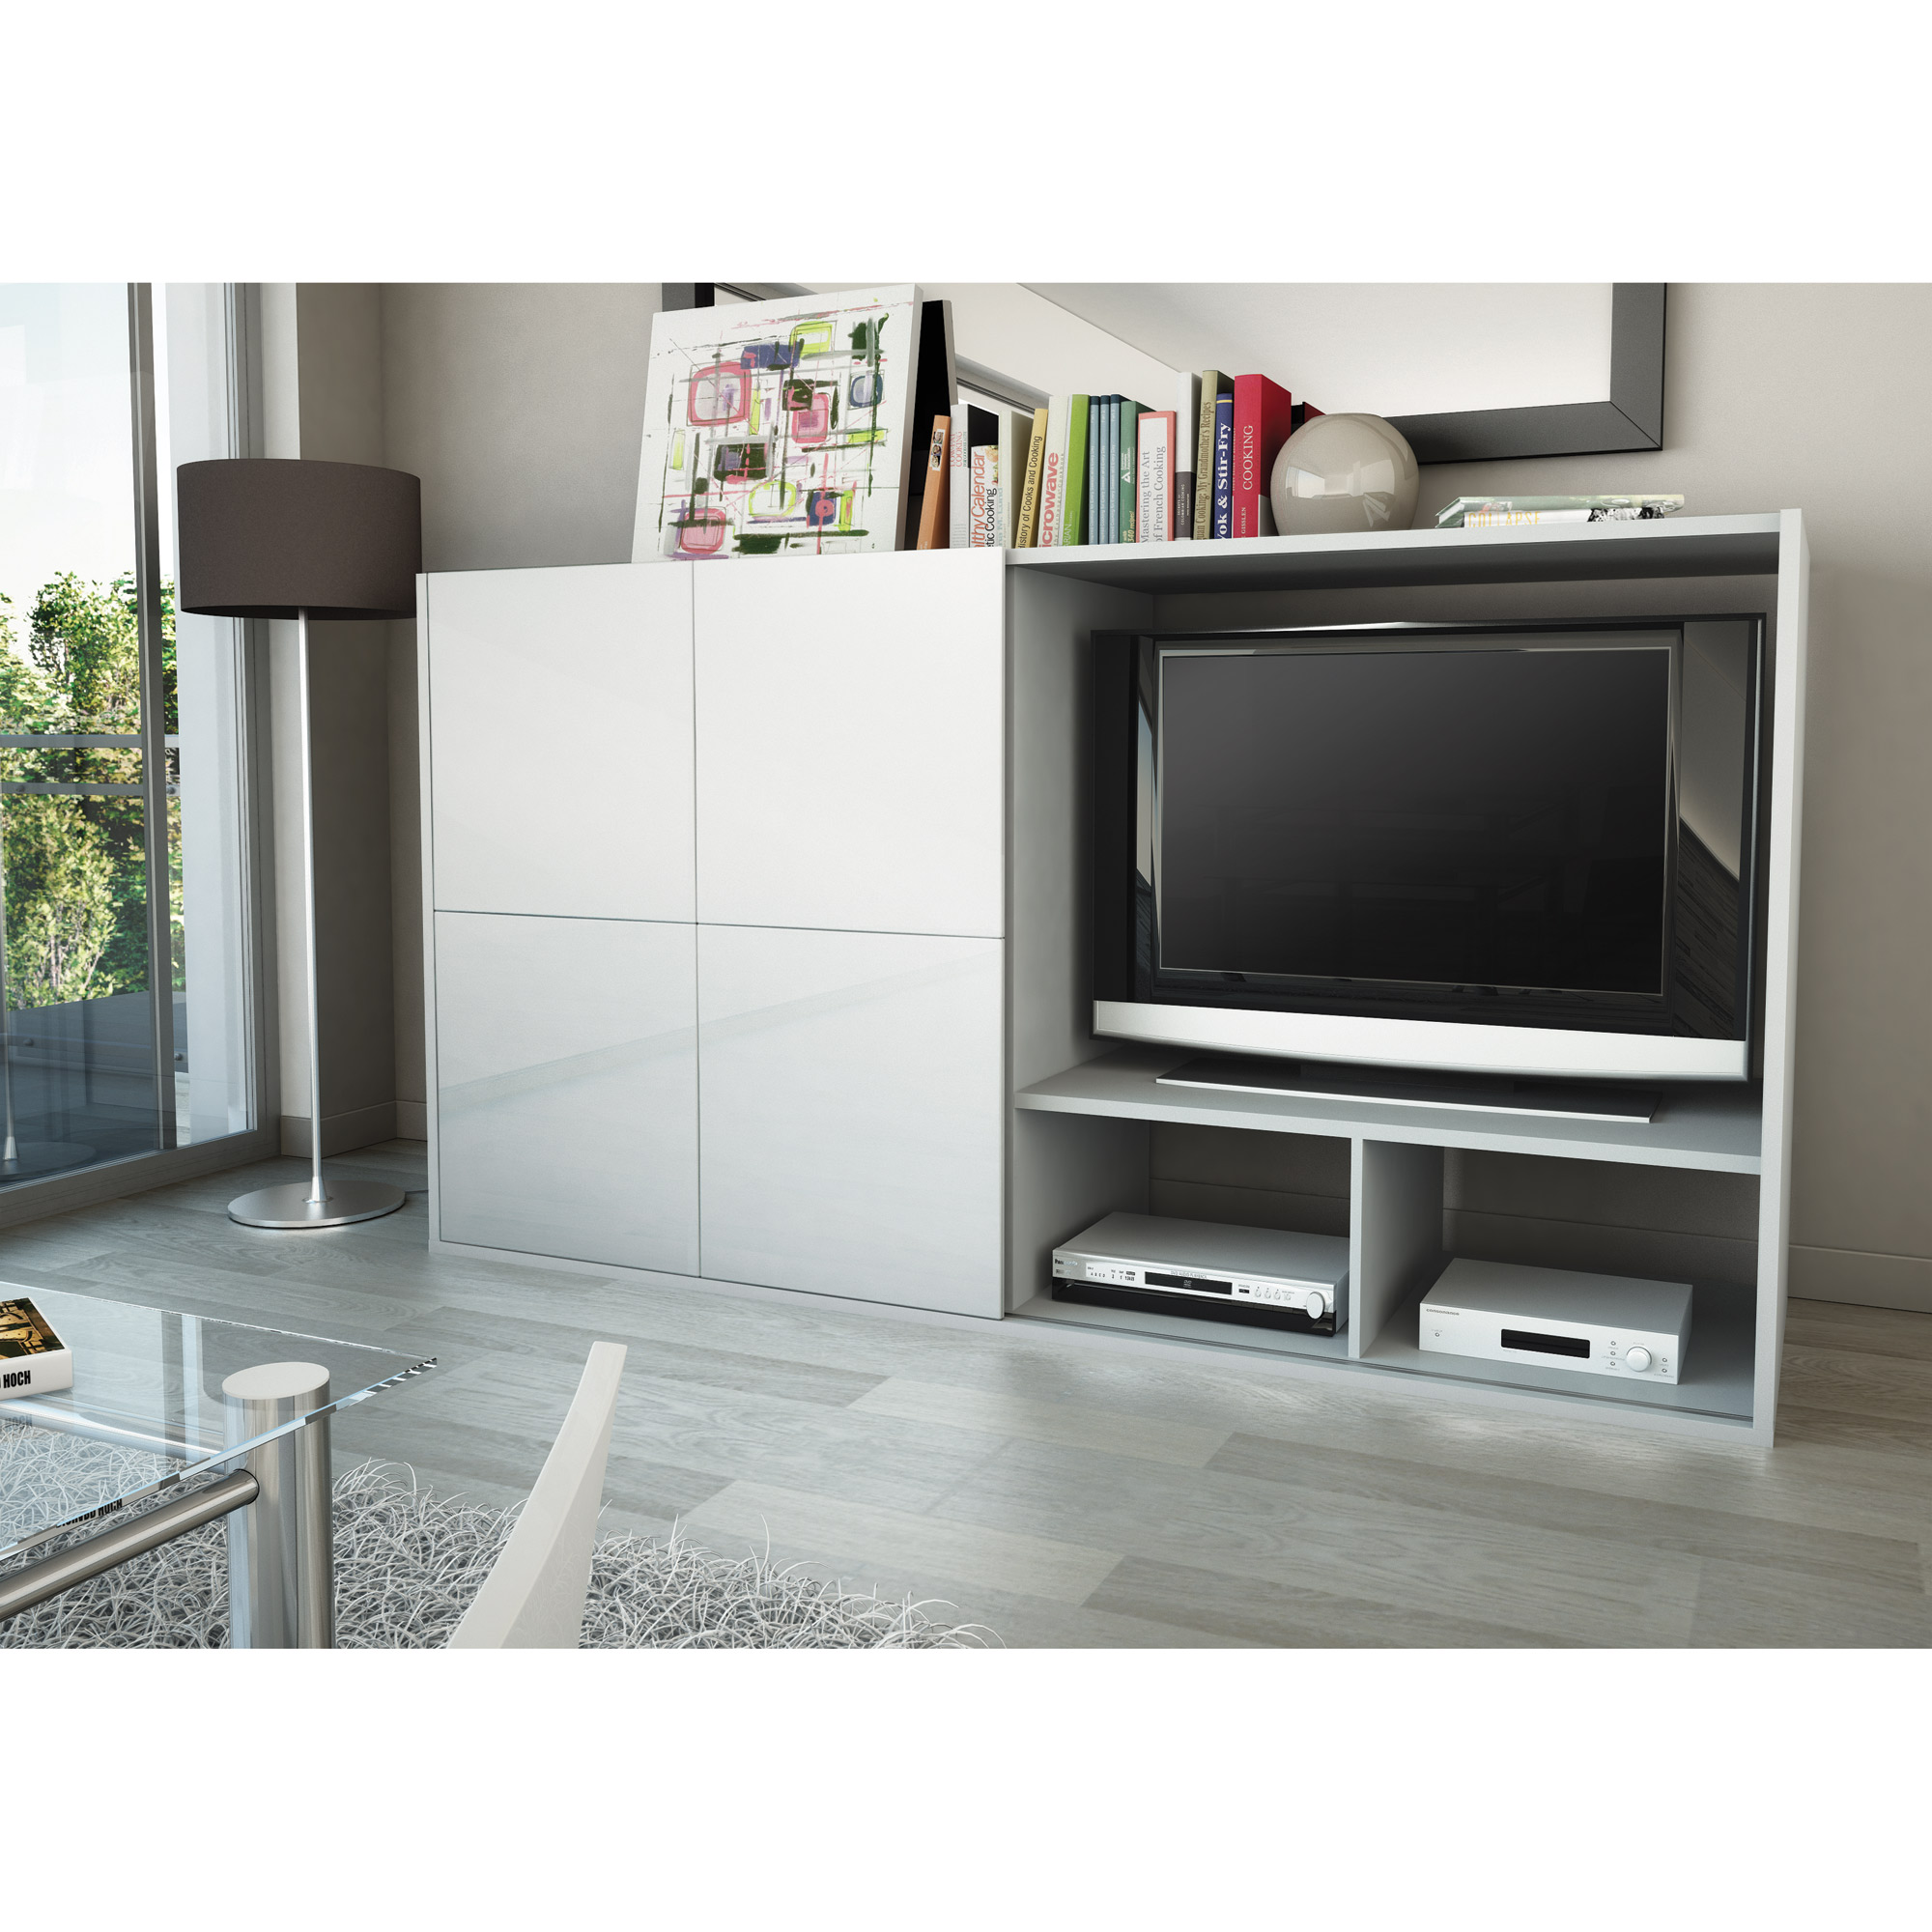 meuble tv hauteur 1m id es de d coration int rieure french decor. Black Bedroom Furniture Sets. Home Design Ideas